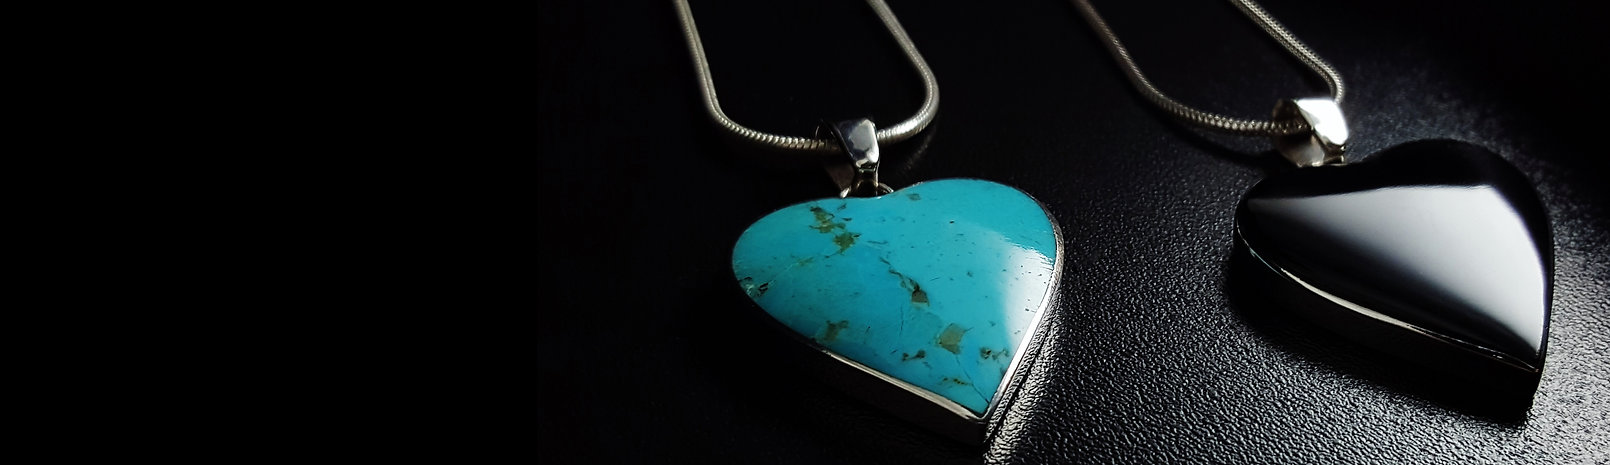 Gemory necklace pendant for women, chain pendant for her, heart pendants, black pendant, turquoise pendant